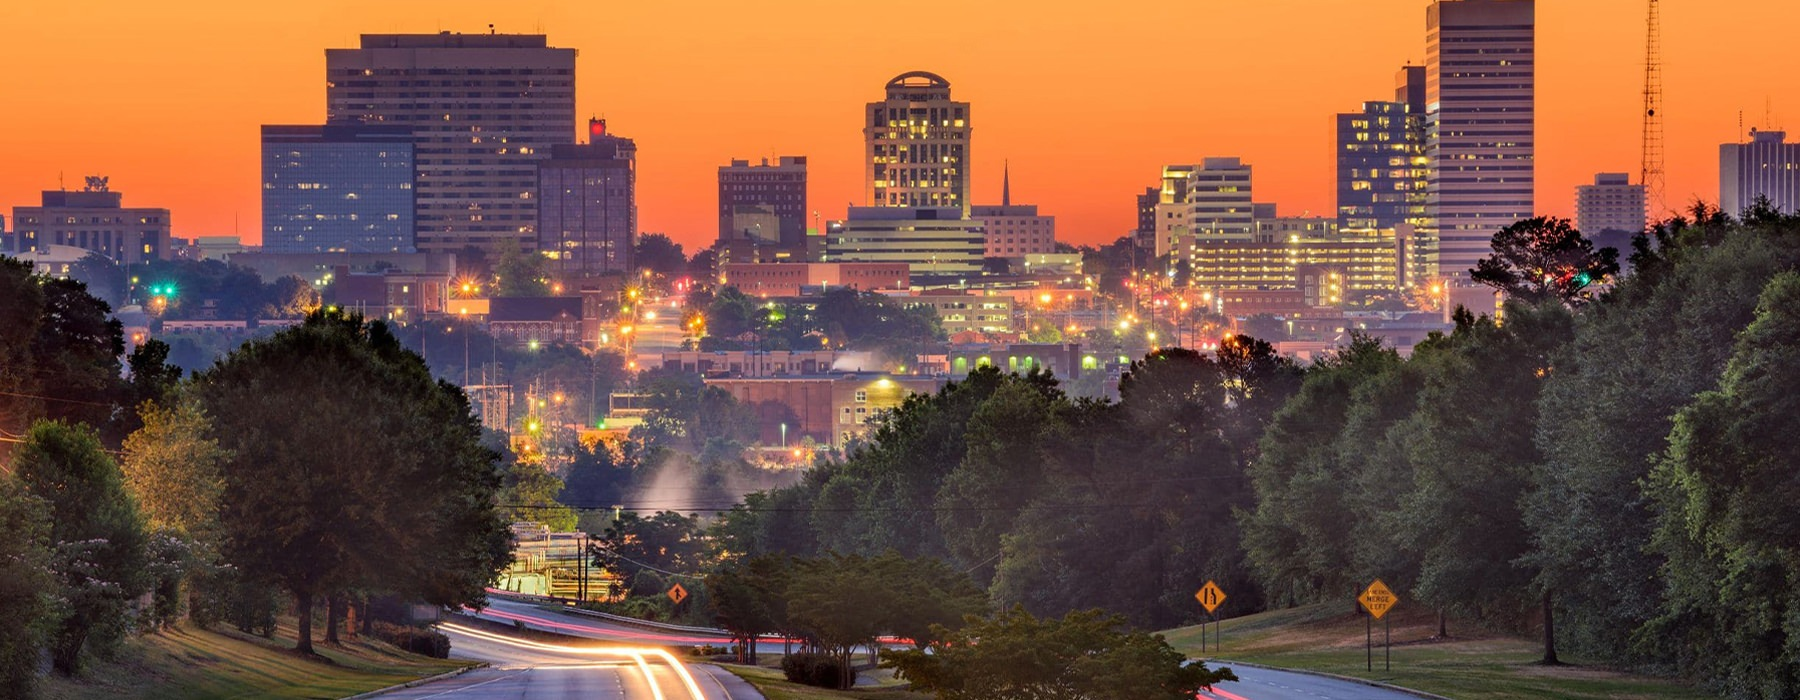 Sunset skyline view of Columbia, SC